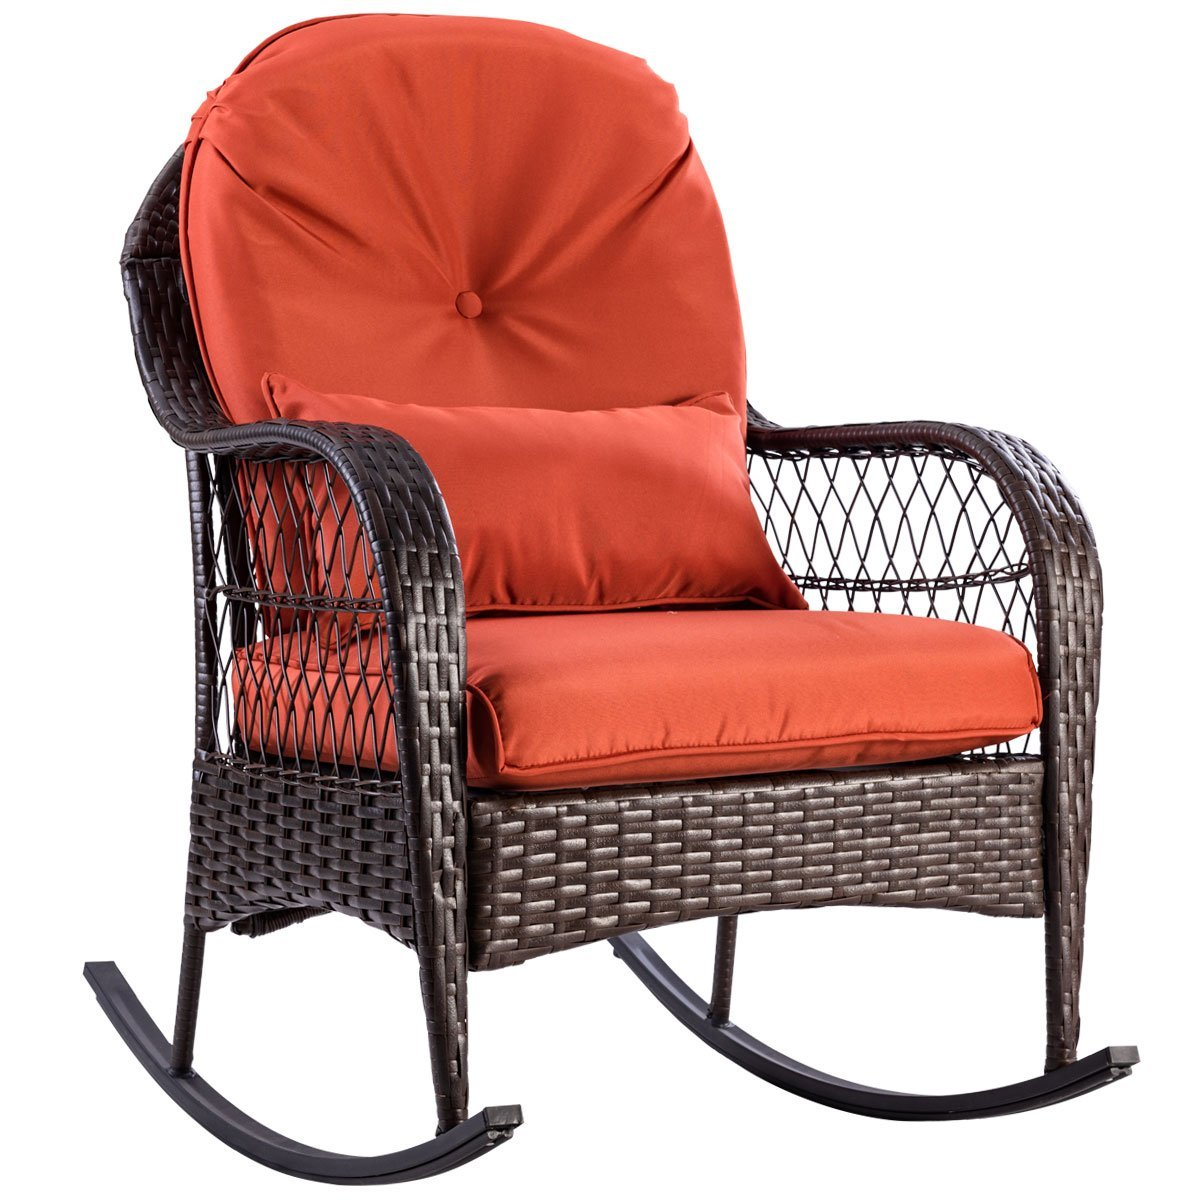 "TANGKULA Wicker Rocking Chair Outdoor Porch Garden Lawn Deck Wicker All Weather Steel Frame Rocker Patio Furniture w/Cushion (red Cushion) 27"" Lx34.5 Wx37.5 H"